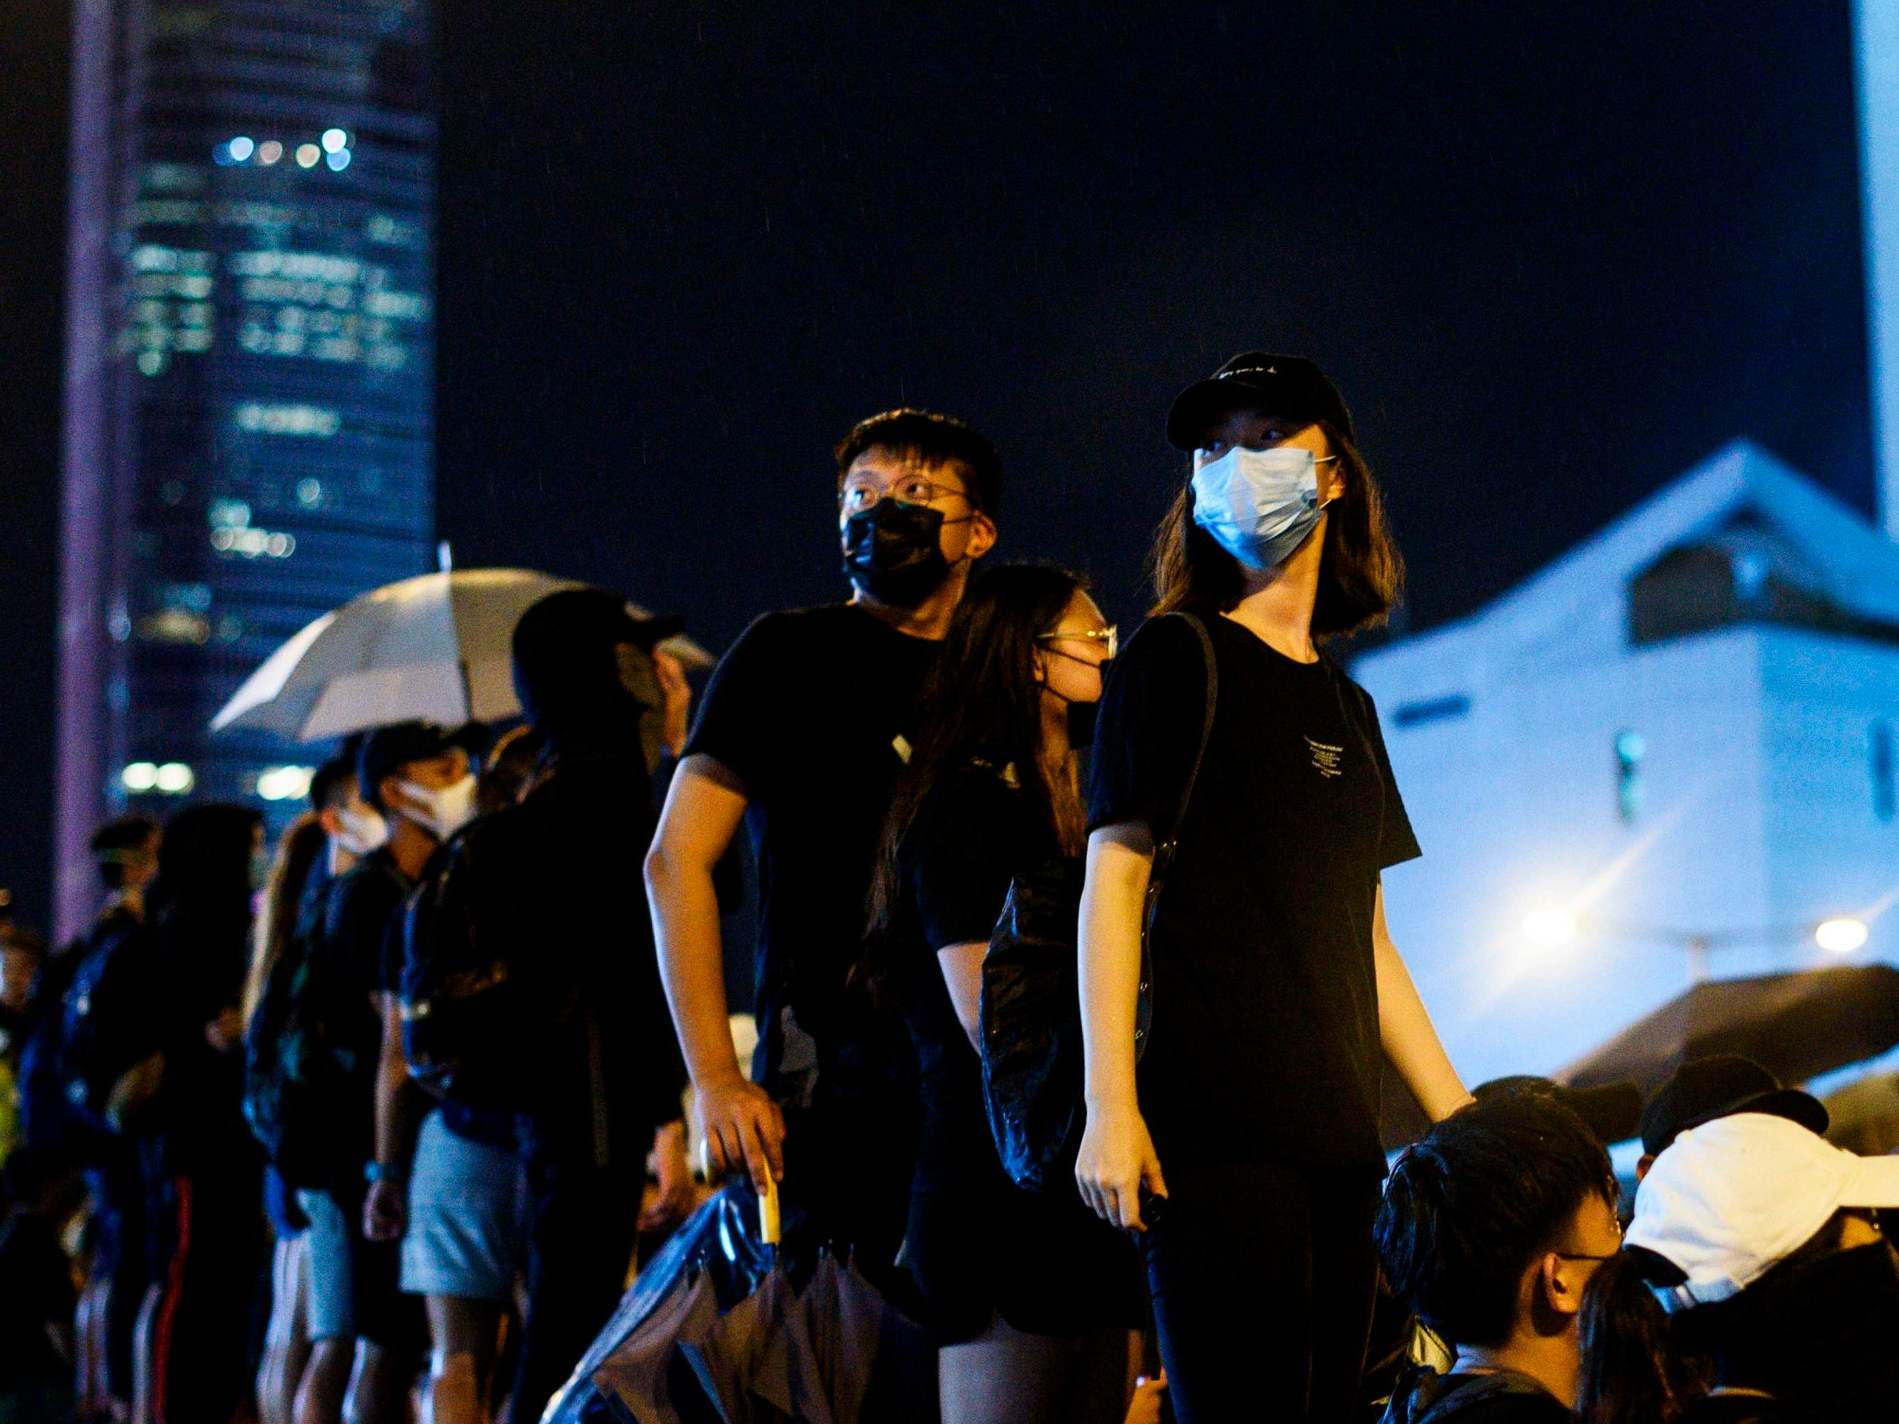 Hong Kong: China is spreading disinformation about pro-democracy protests, Facebook and Twitter say